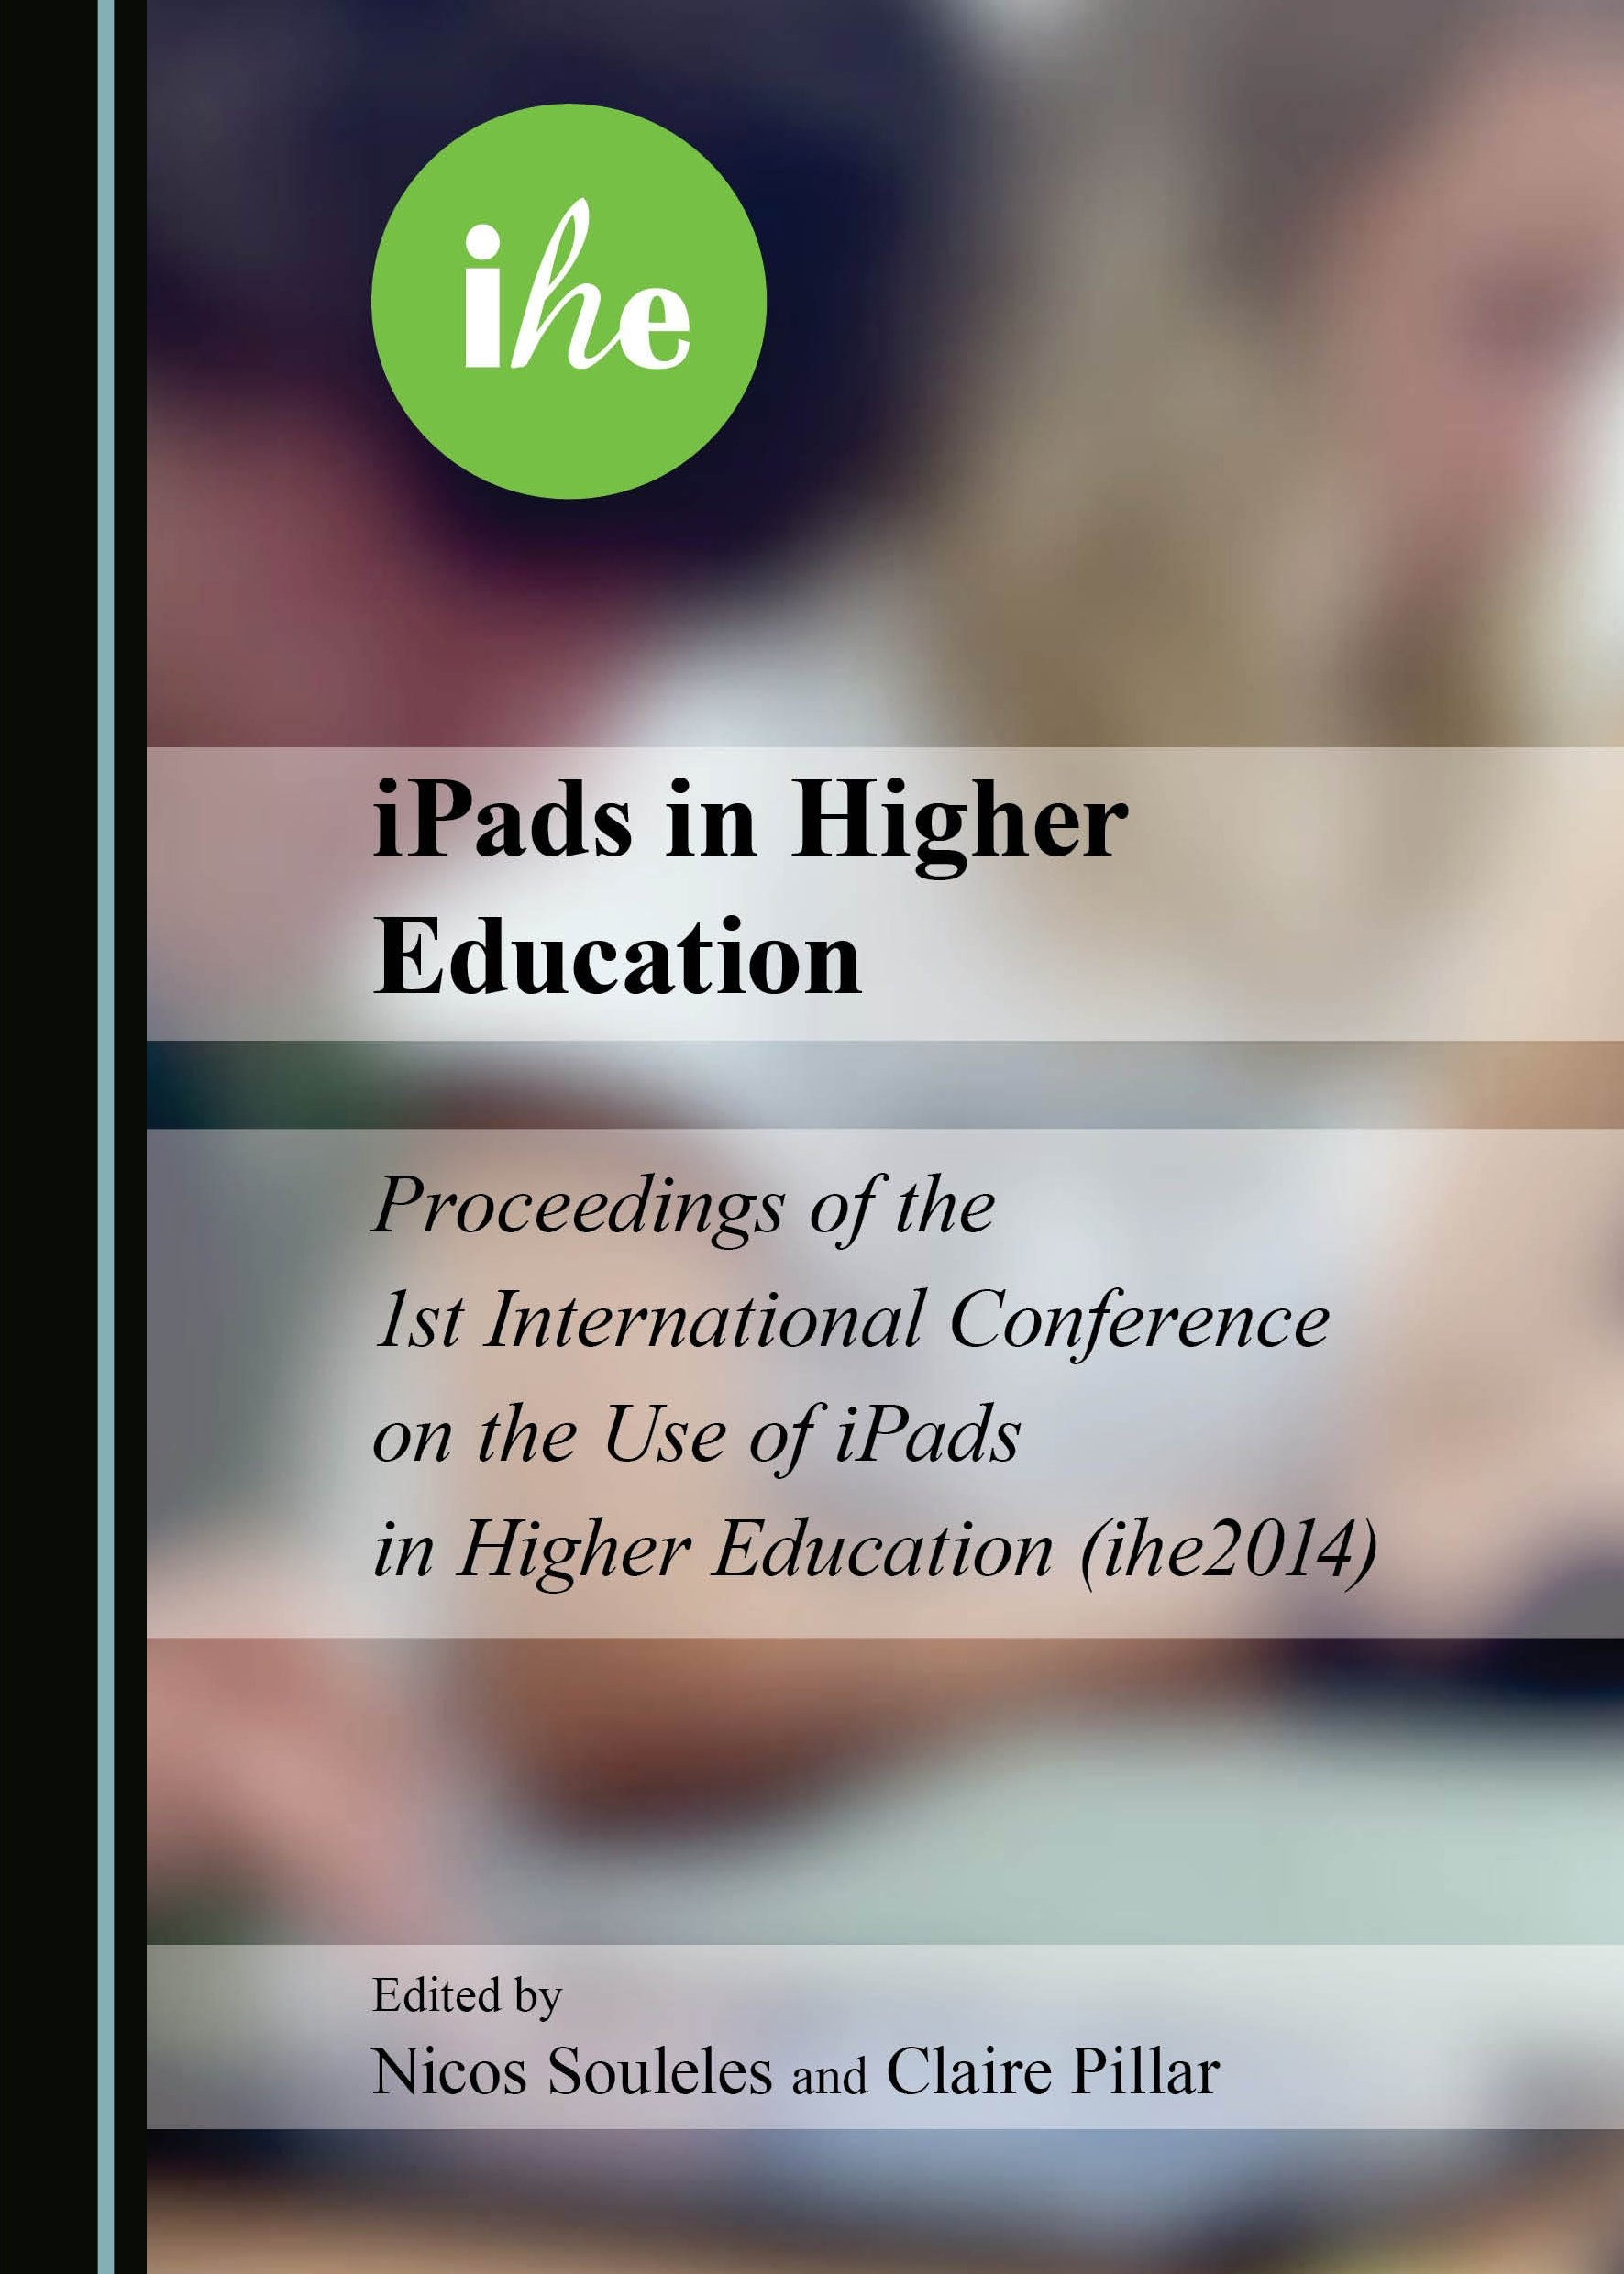 iPads in Higher Education: Proceedings of the 1st International Conference on the Use of iPads in Higher Education (ihe2014)